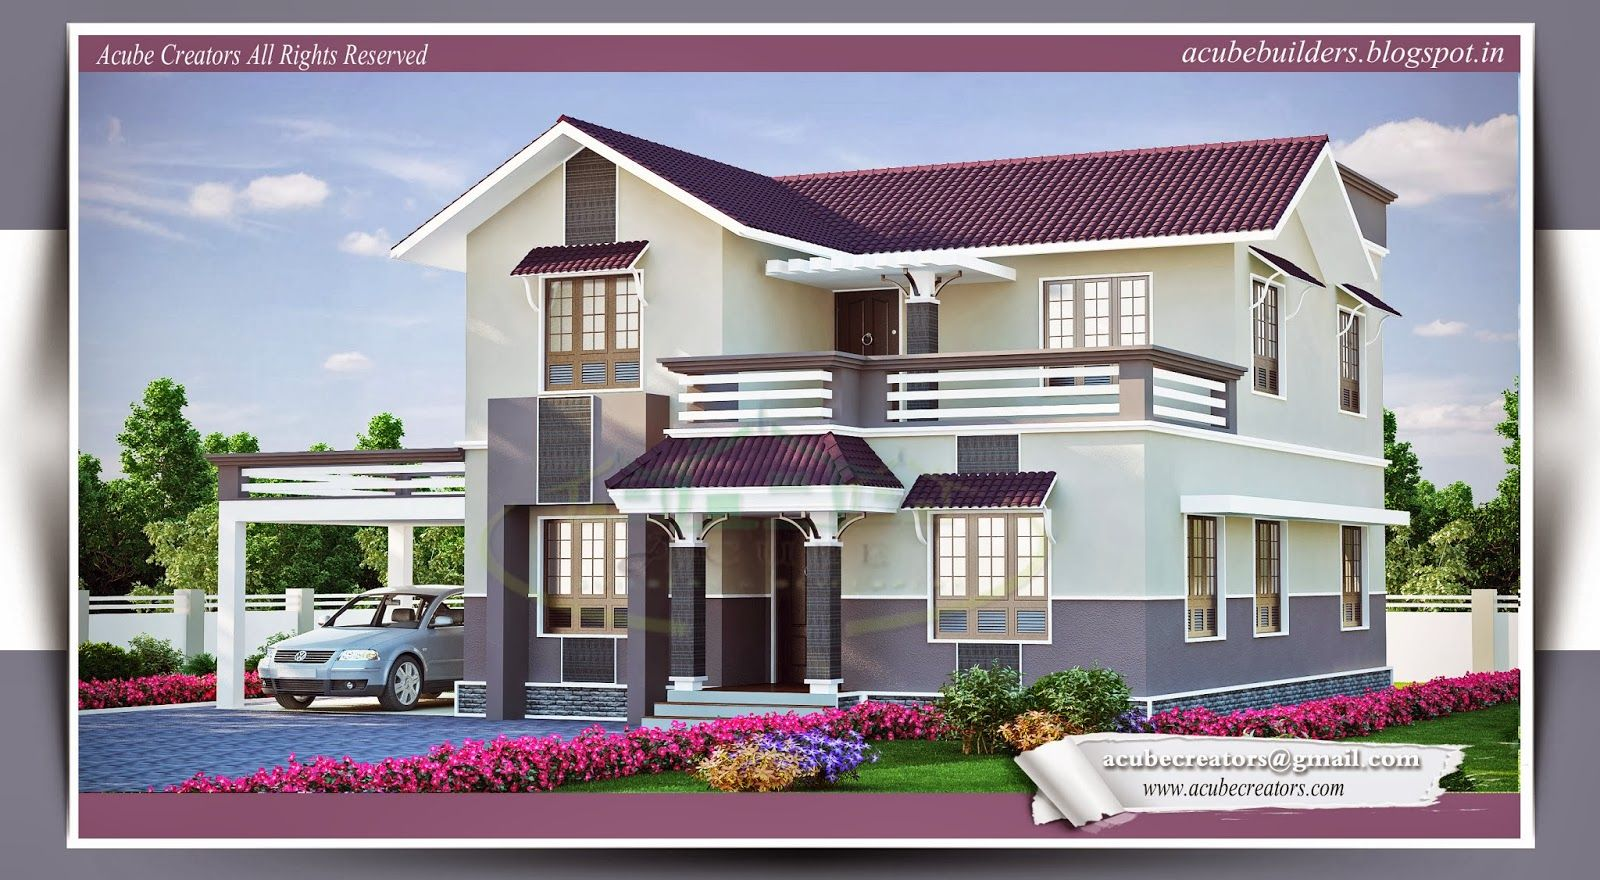 KERALA BEAUTIFUL HOUSE PLANS PHOTOS Home Decoration Pinterest Kerala B